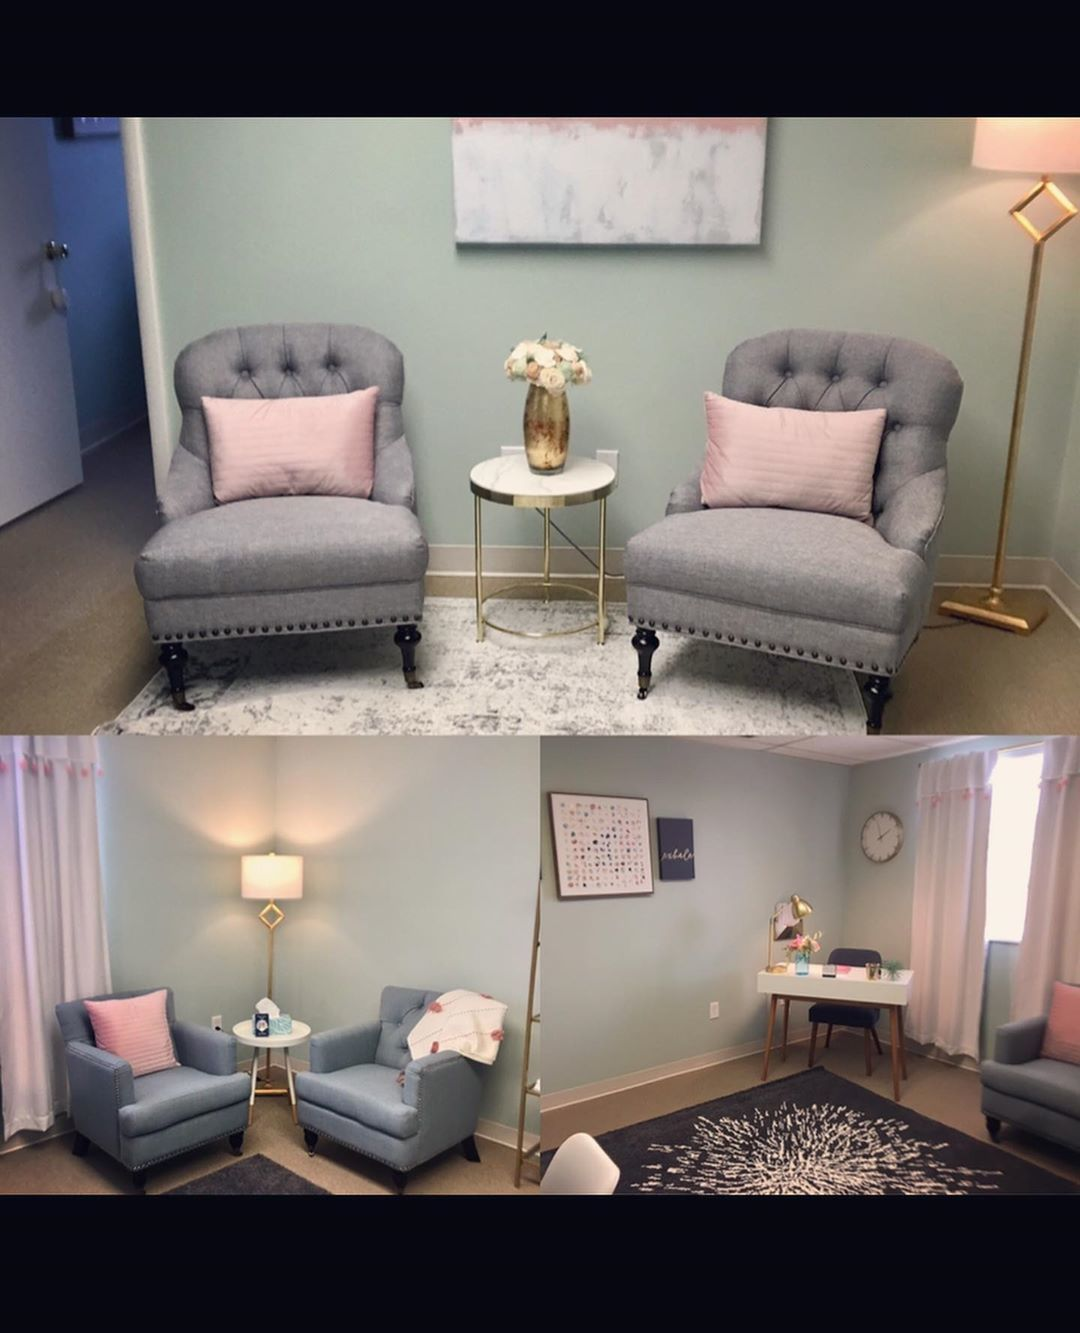 therapist office interior design